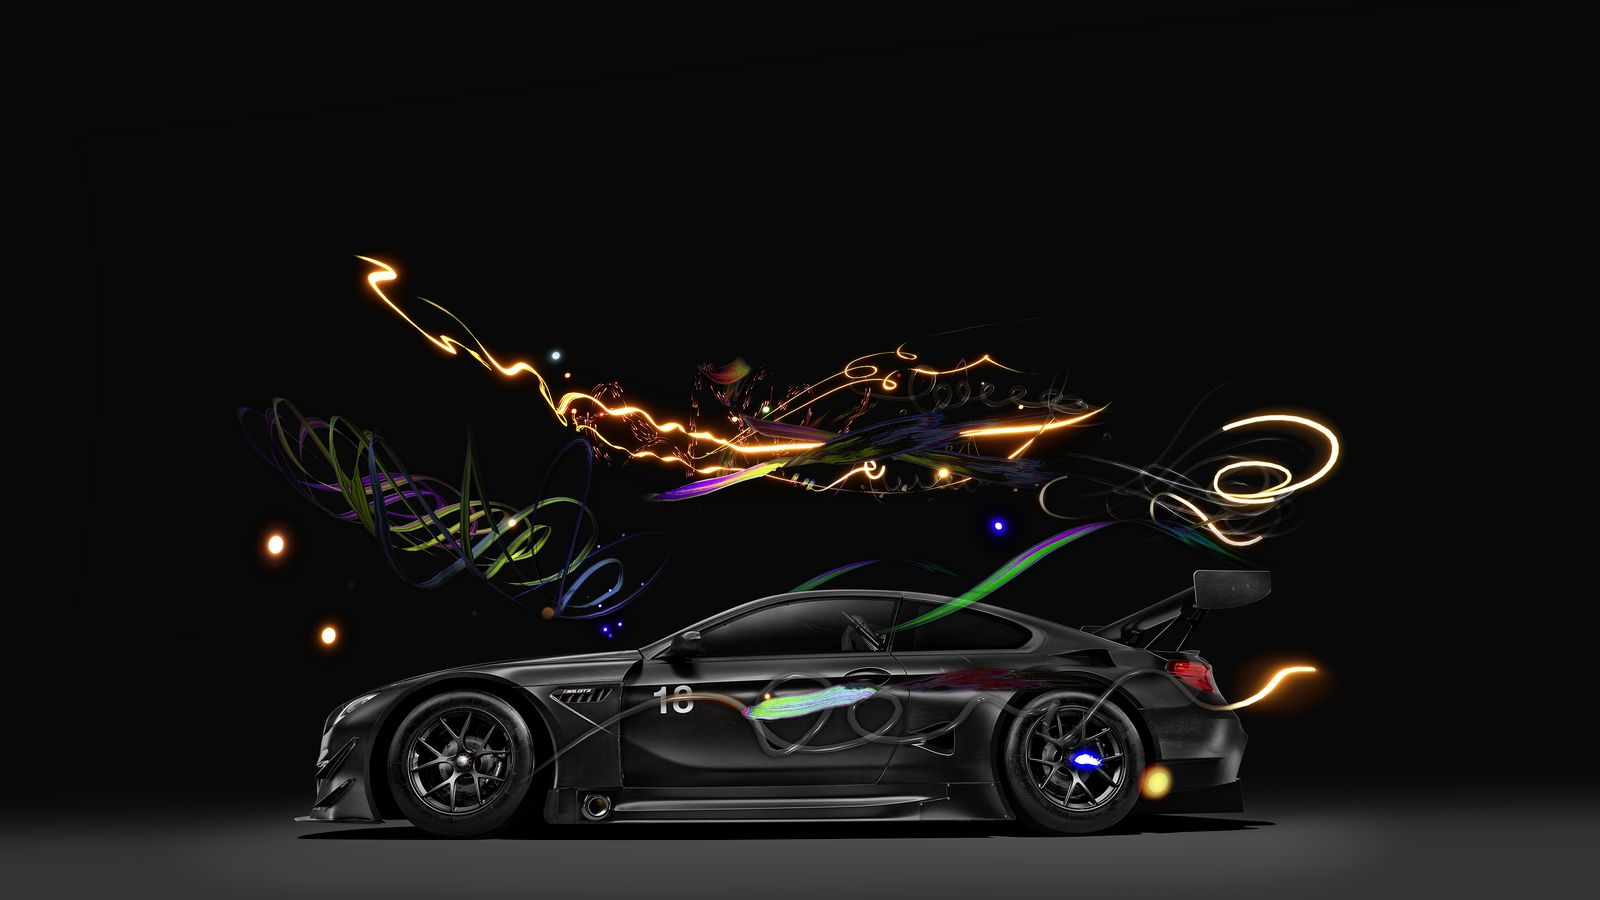 Tesla Car In Space Wallpaper New Bmw M6 Gt3 Art Car Runs On Speed And Vr Imagination